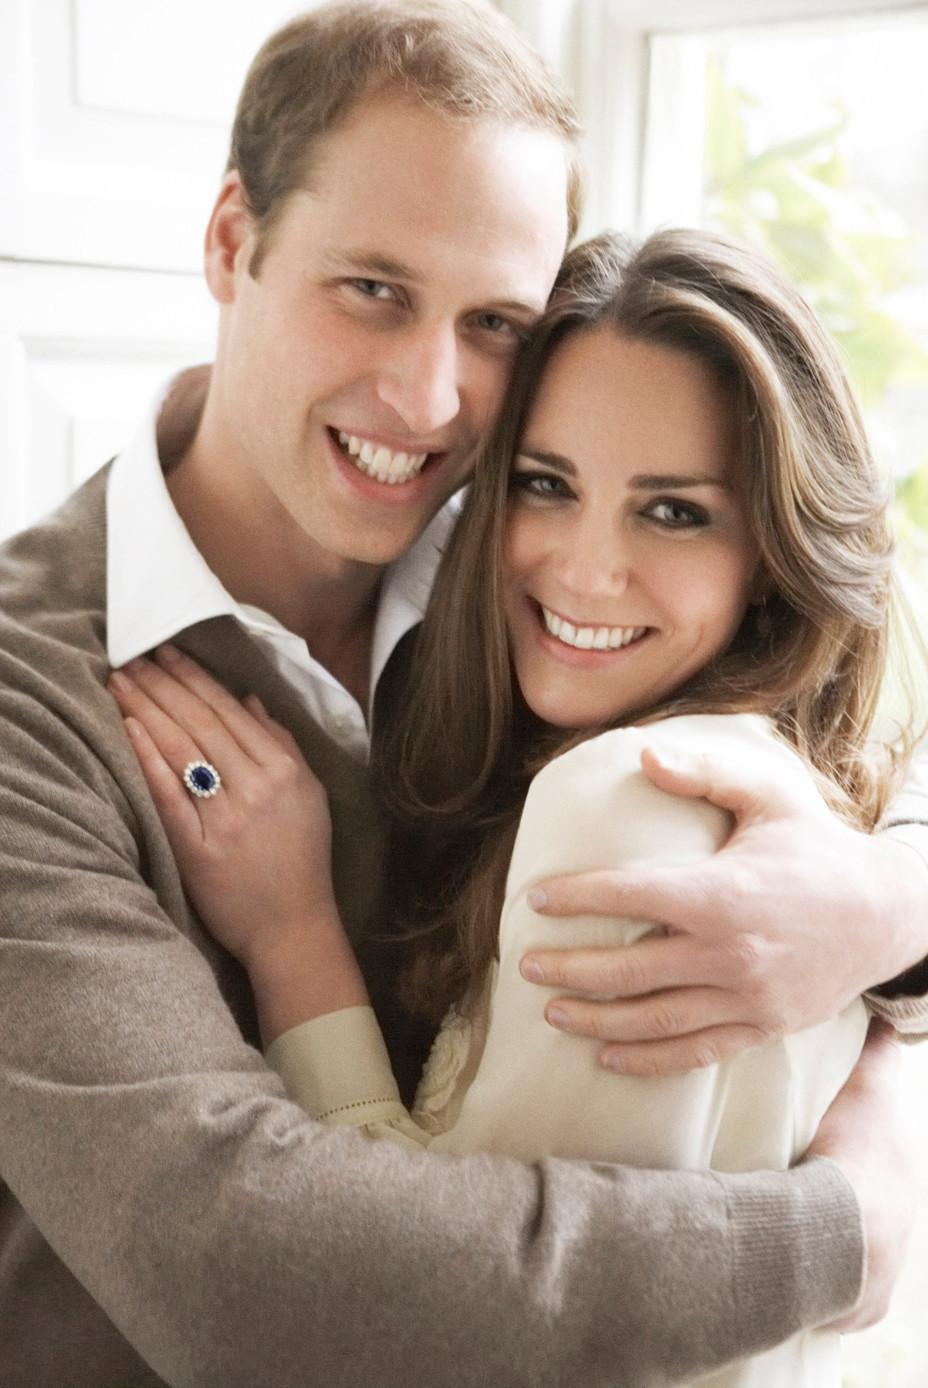 who would be your friend Kate or William?